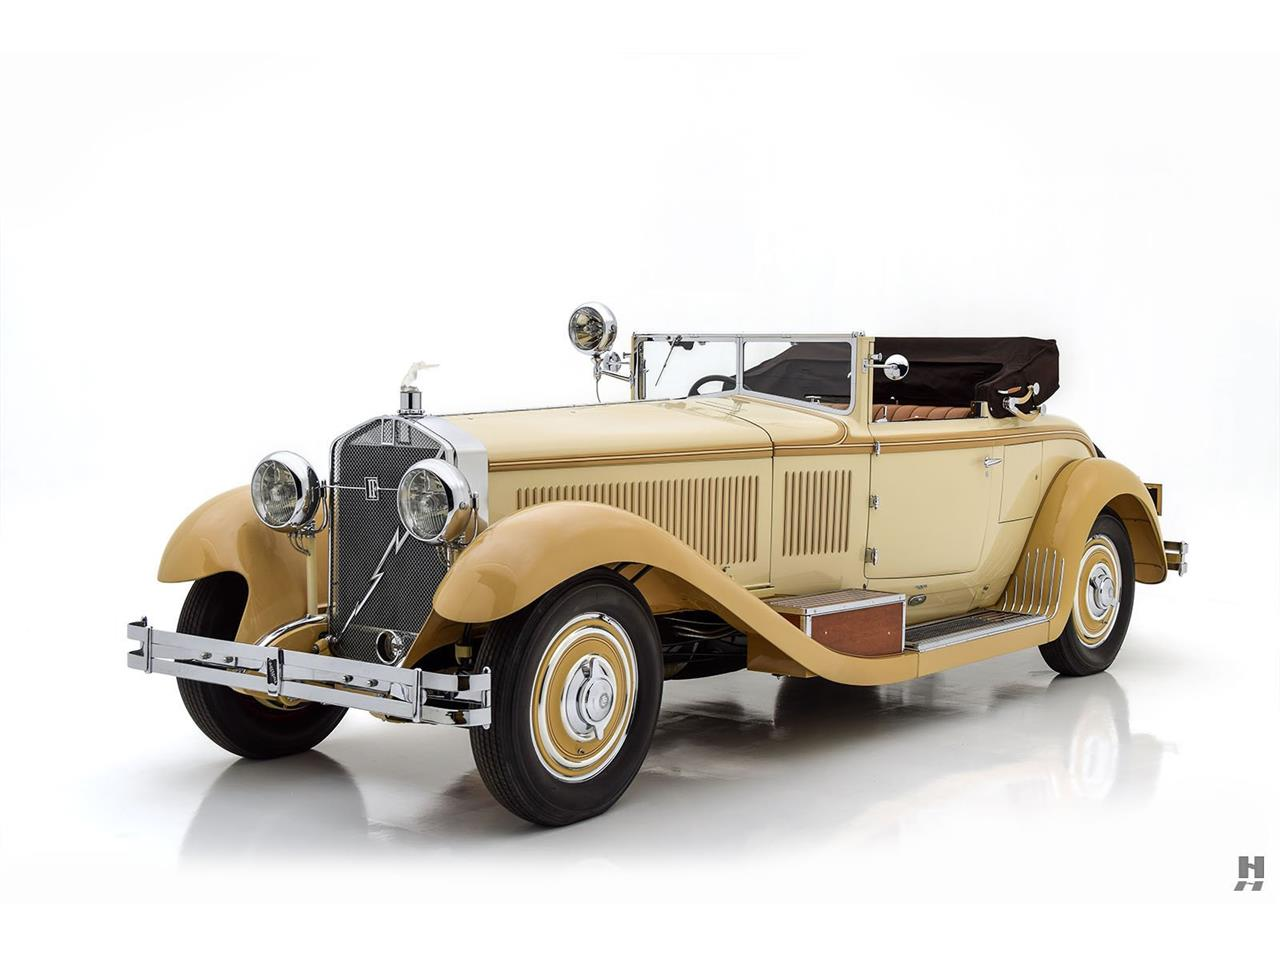 1930 Isotta-Fraschini 8A SS (CC-1427923) for sale in Saint Louis, Missouri